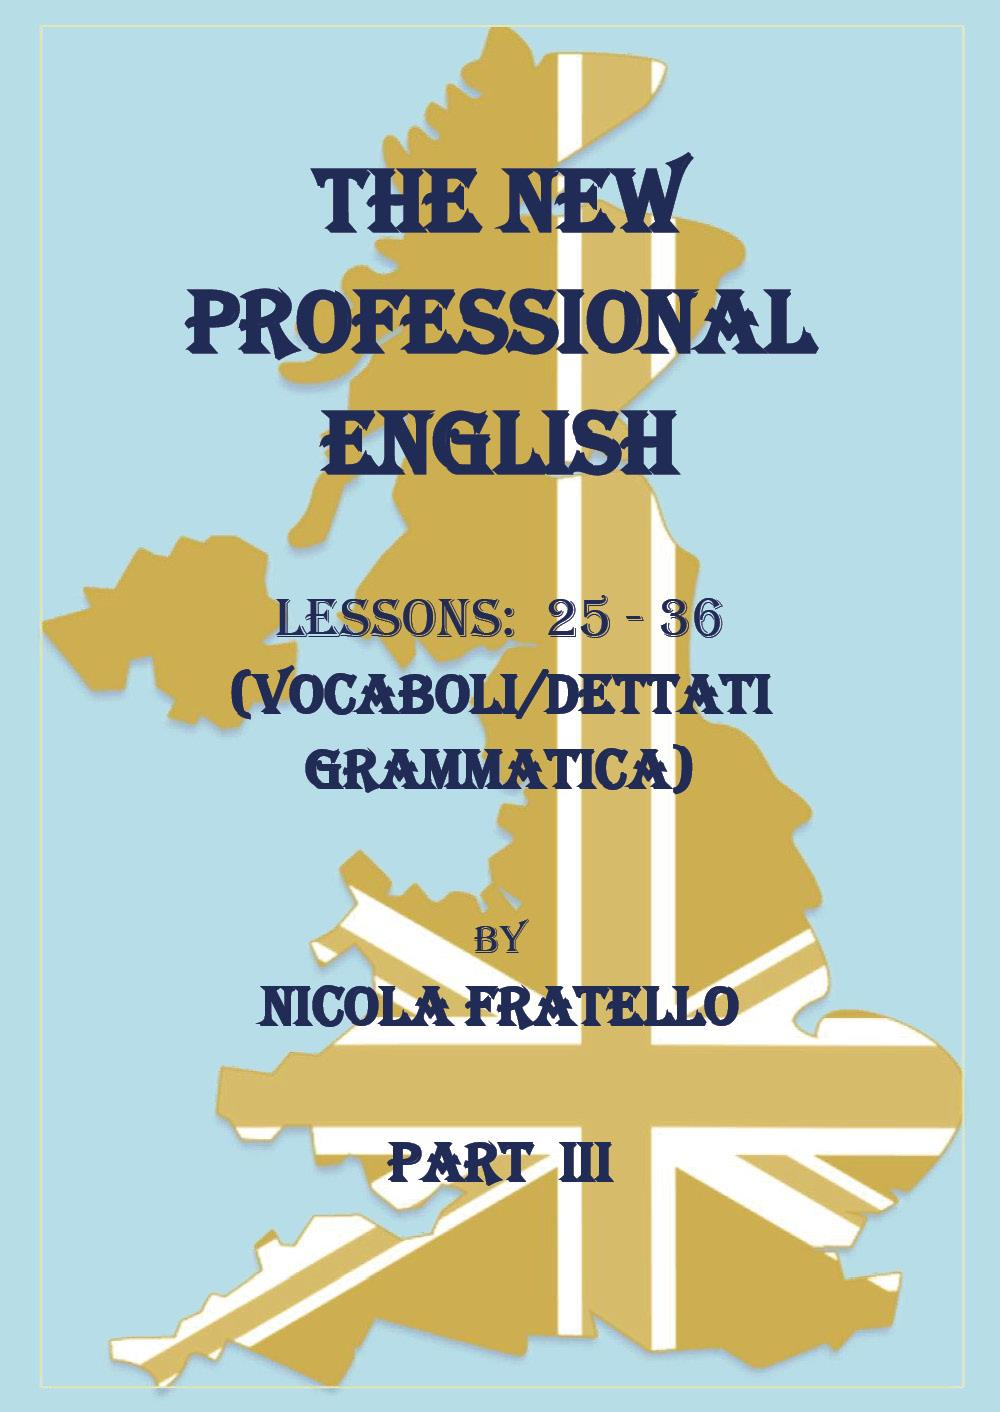 The New Professional English - Part III